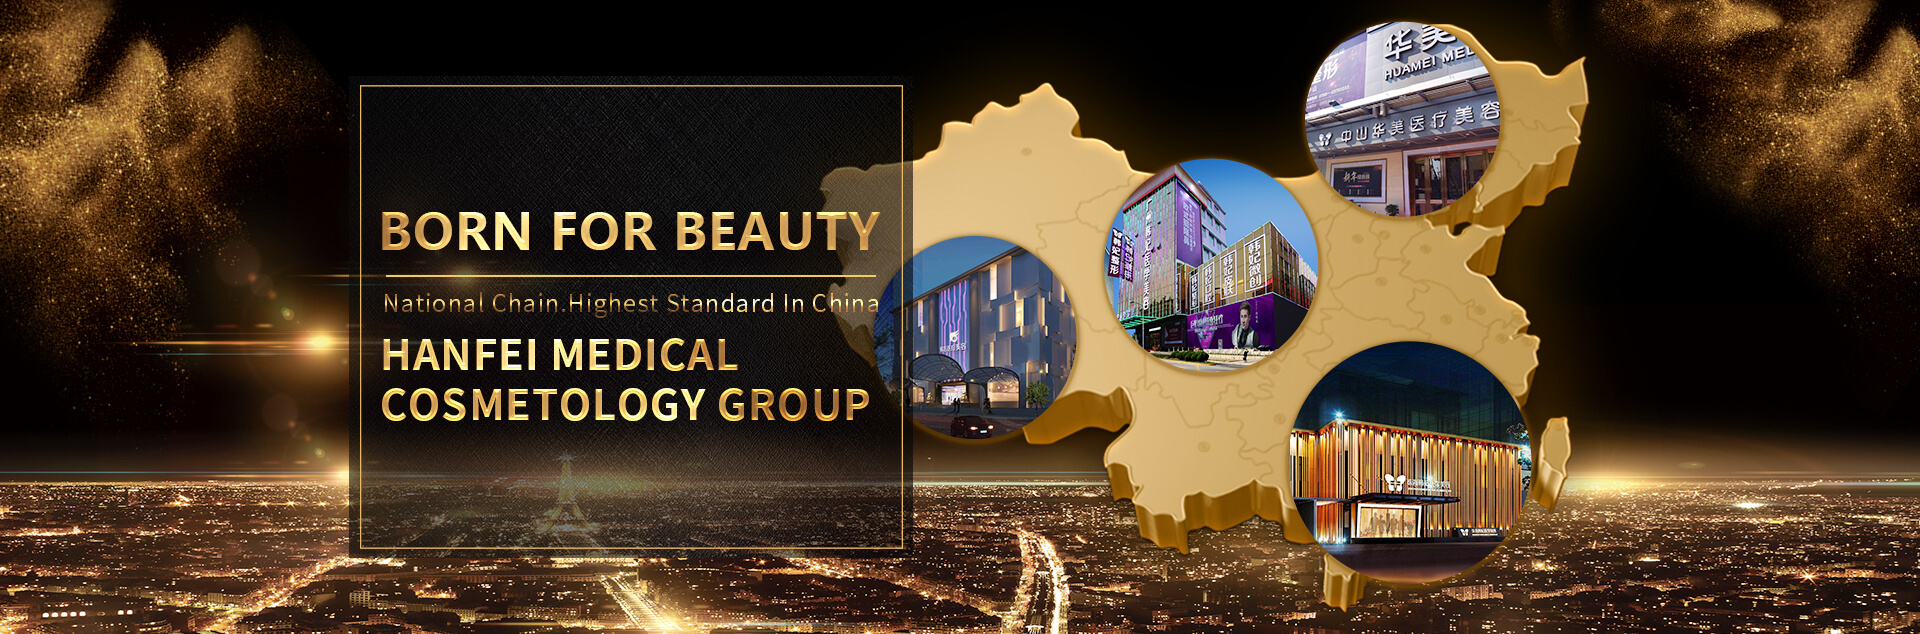 born for beauty hanfei medical cosmetology group